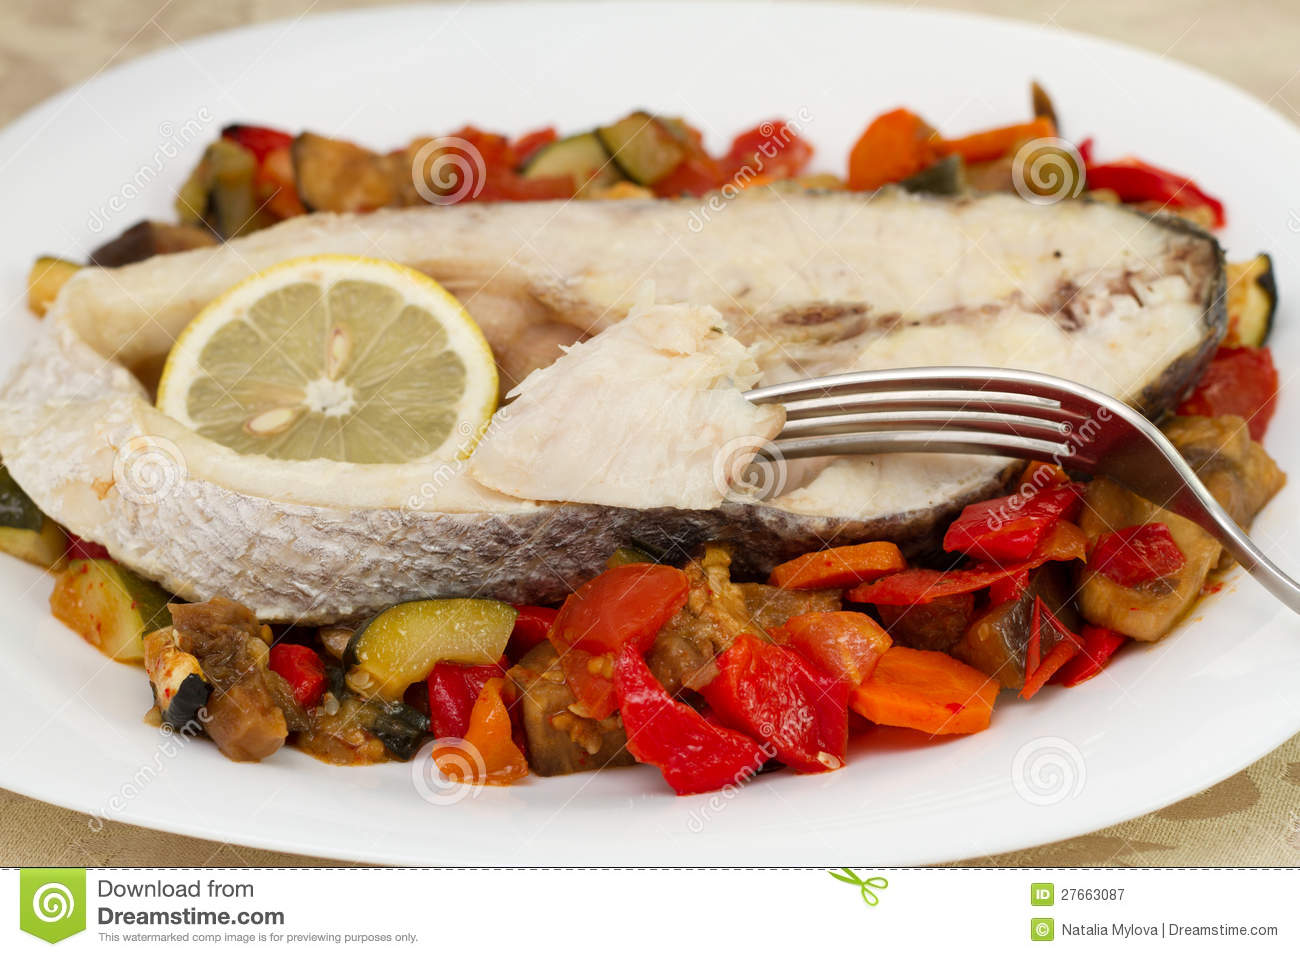 Boiled fish with vegetables stock image image 27663087 for Fish with vegetables